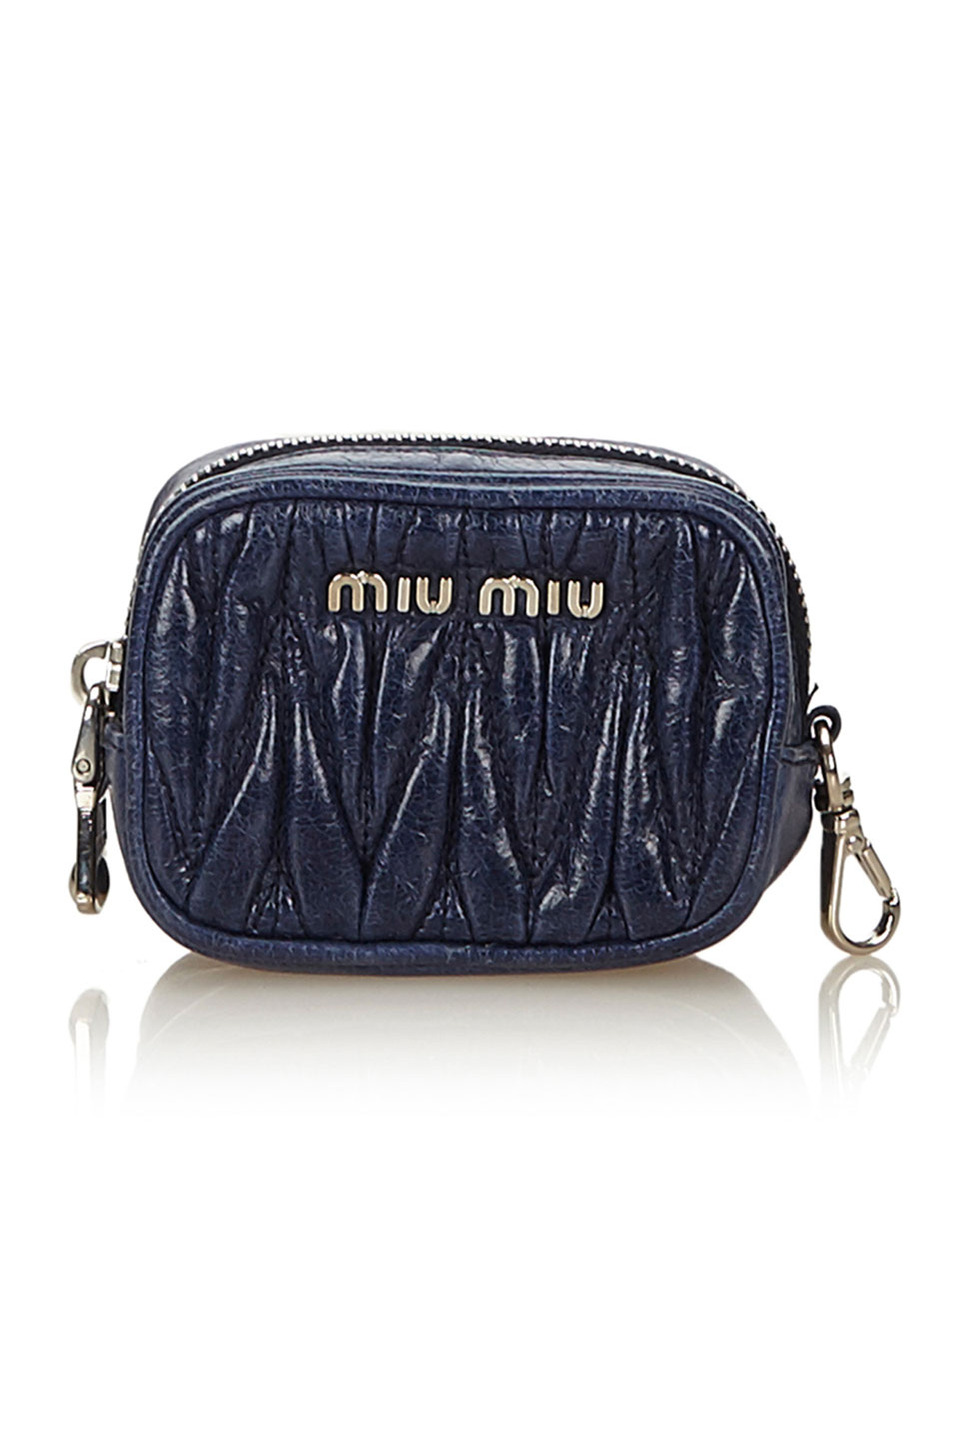 Miu Miu Gathered Leather Coin Pouch in Blue and Navy